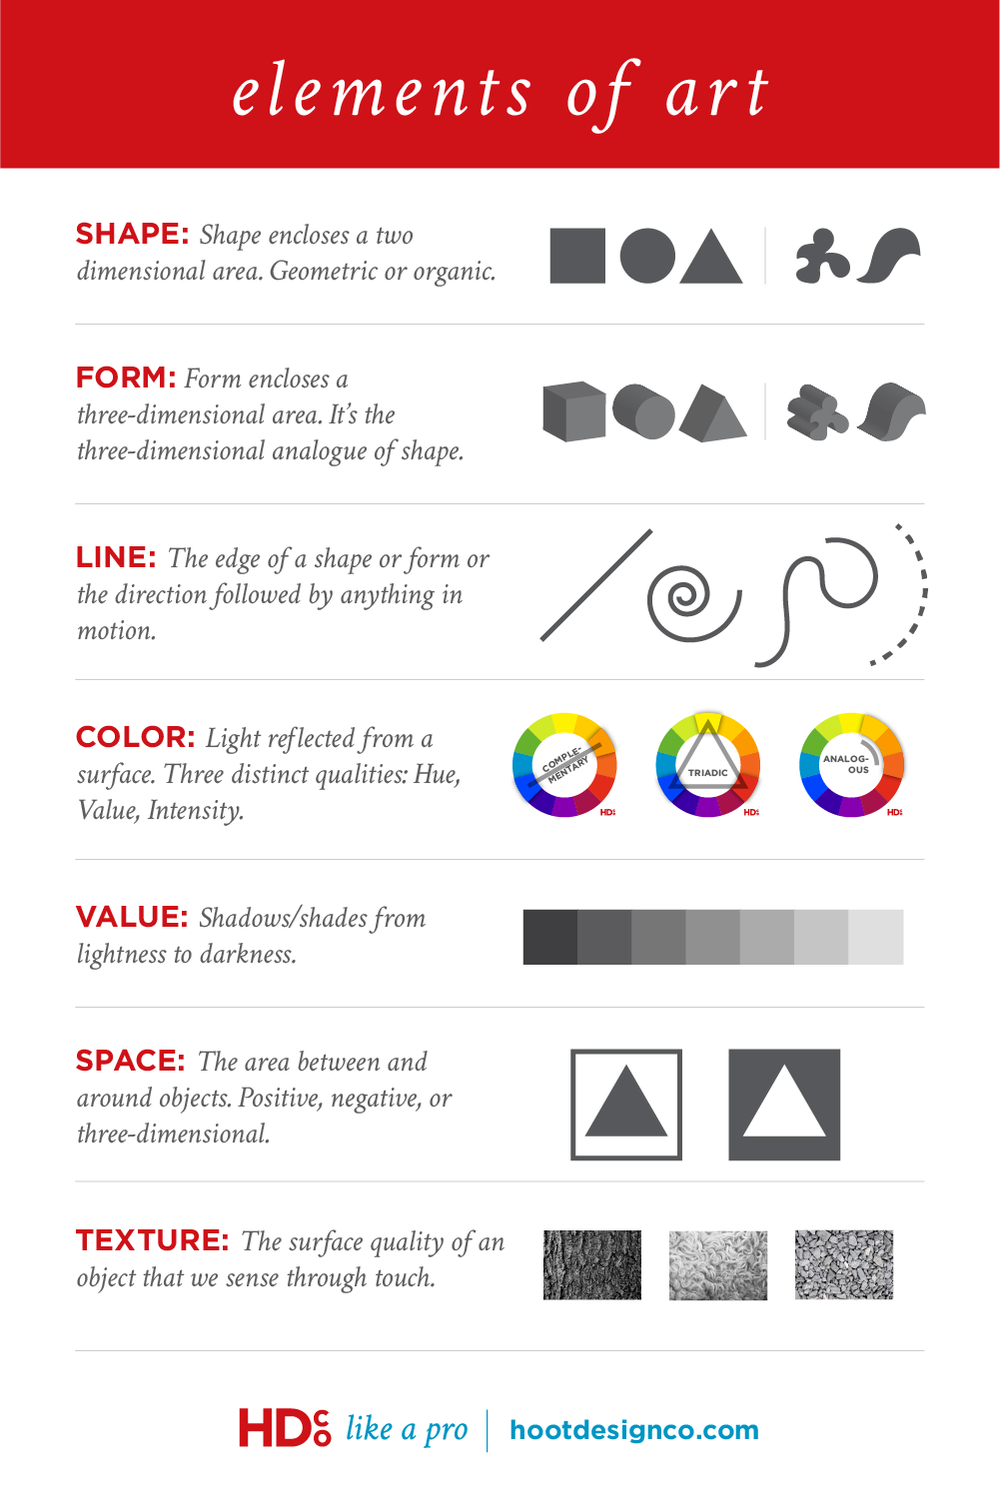 The Elements Of Art Hoot Design Co Web Design Branding And Marketing In Columbia Mo In 2020 Web Design Quotes Web Design Web Design Tips